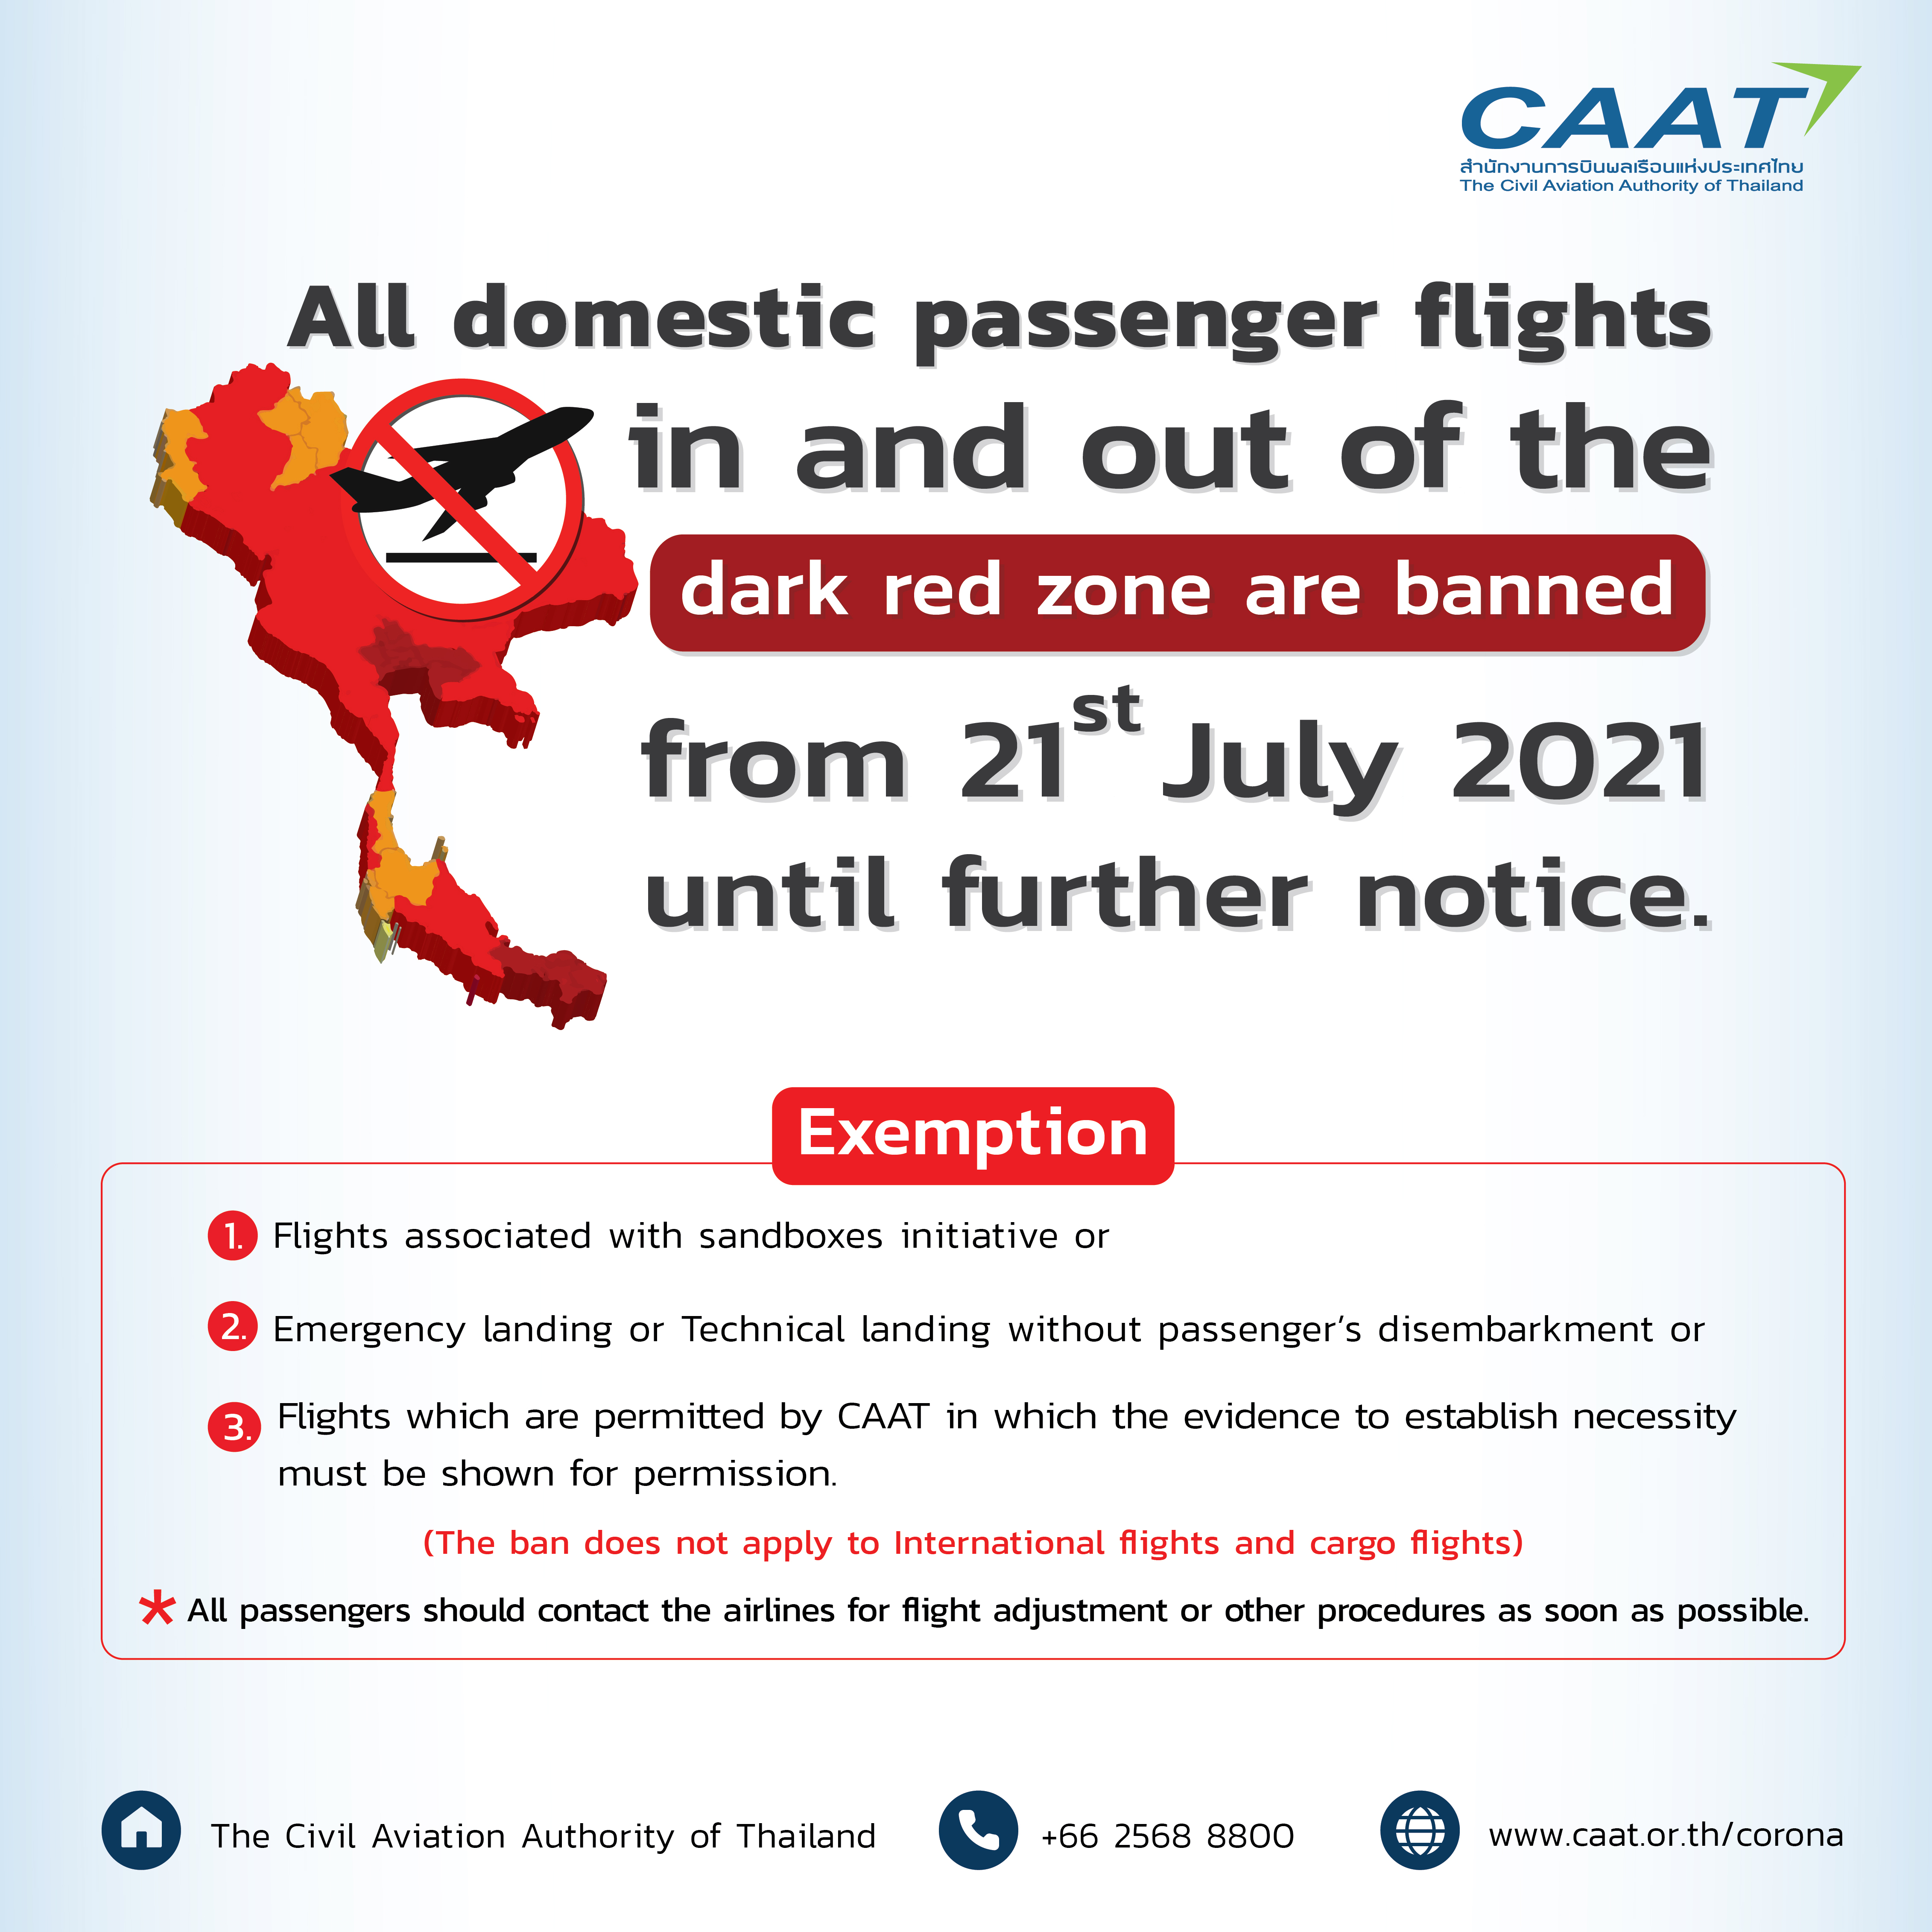 All domestic passenger flights are banned (dark red zone)